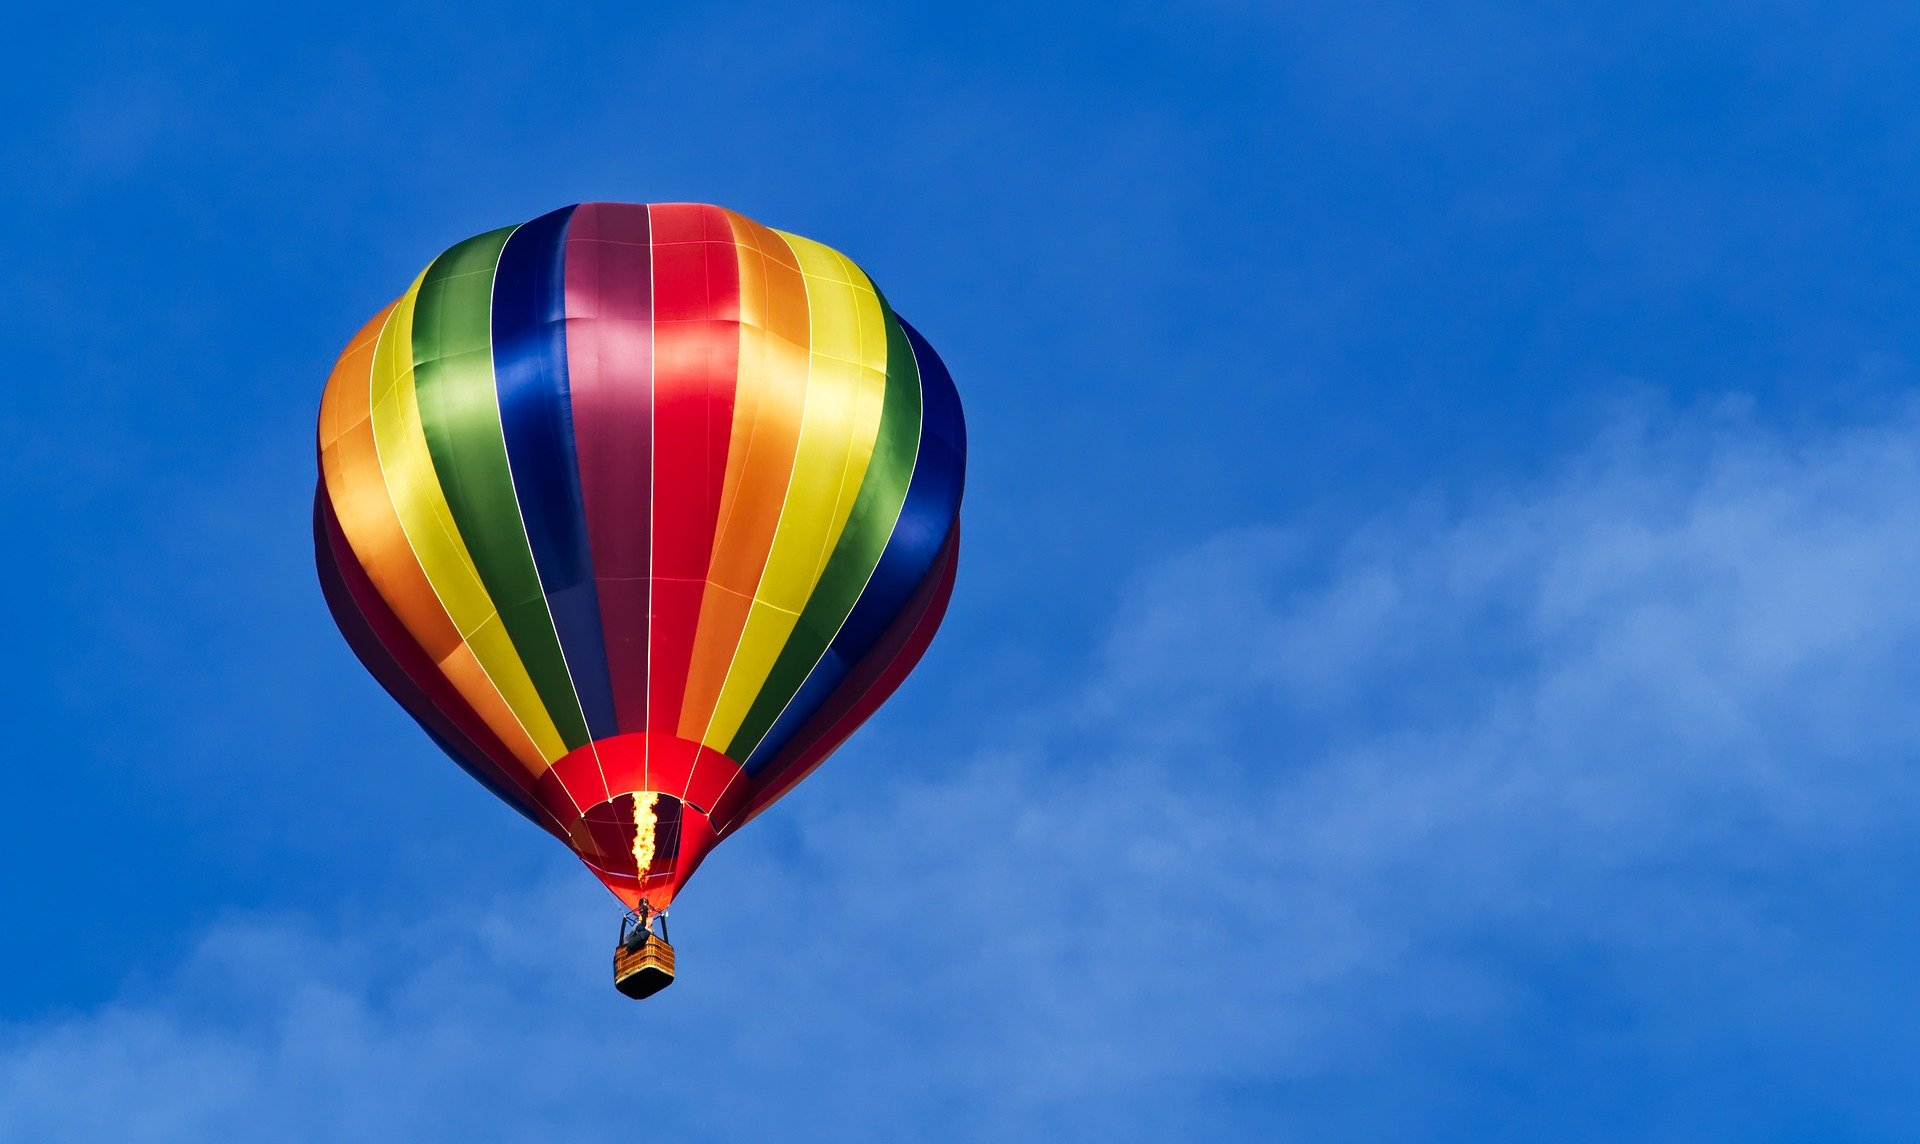 Hot air balloon with pride colors: where to travel based on pride colors